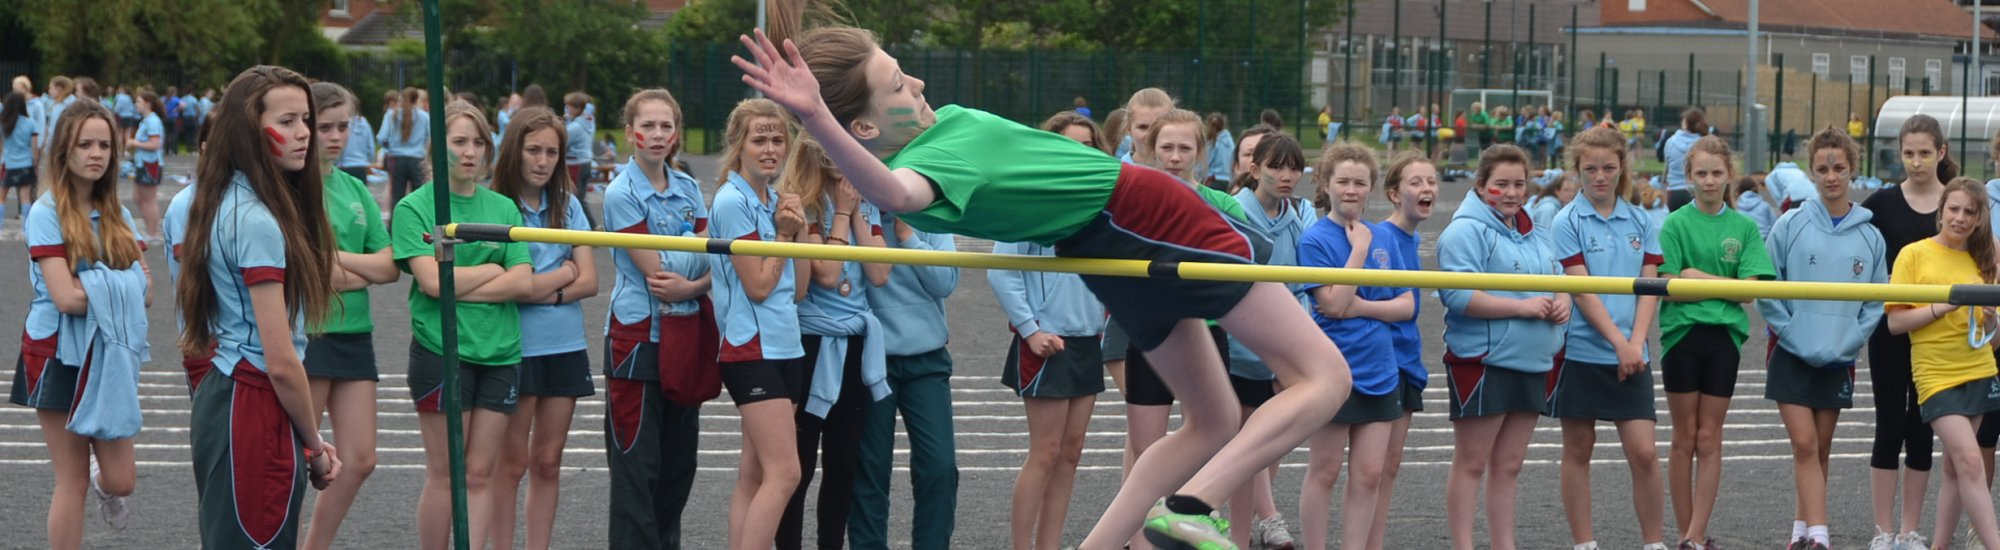 Day of sport High jump